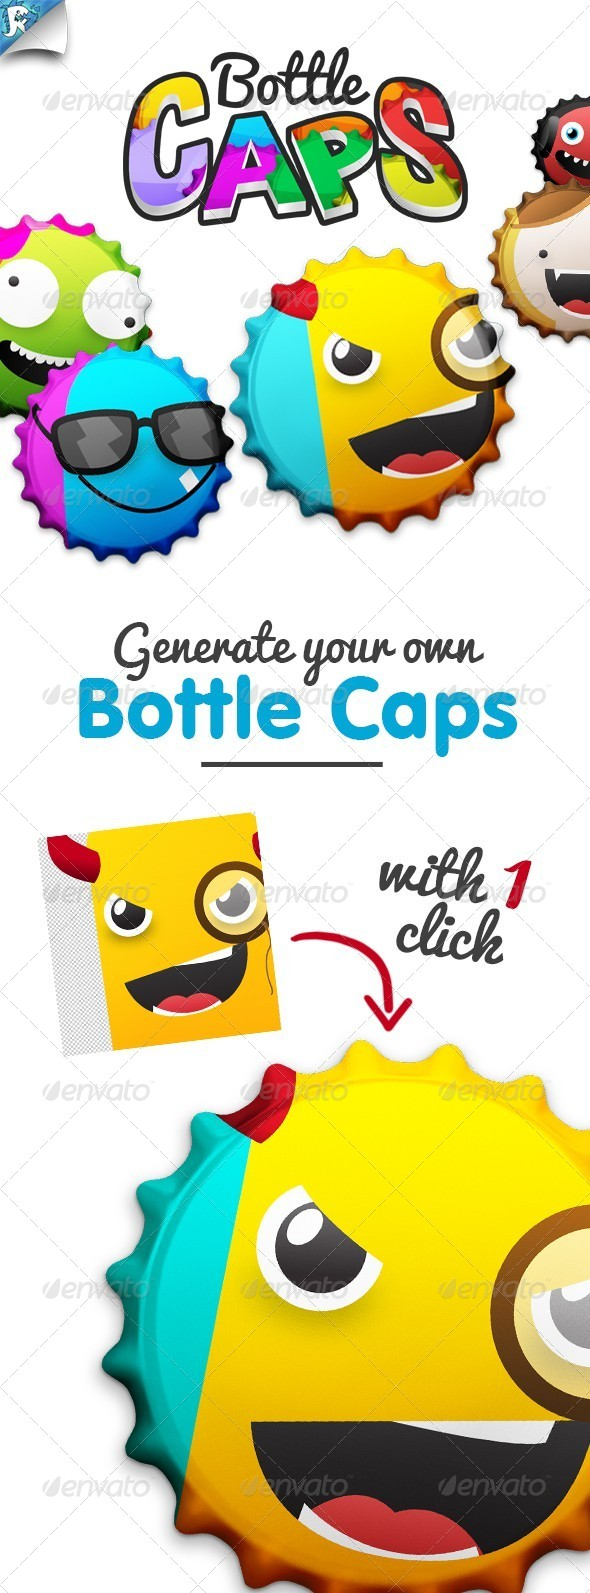 BottleCaps - Bottle Cap Generator - Cap It! - Food and Drink Packaging